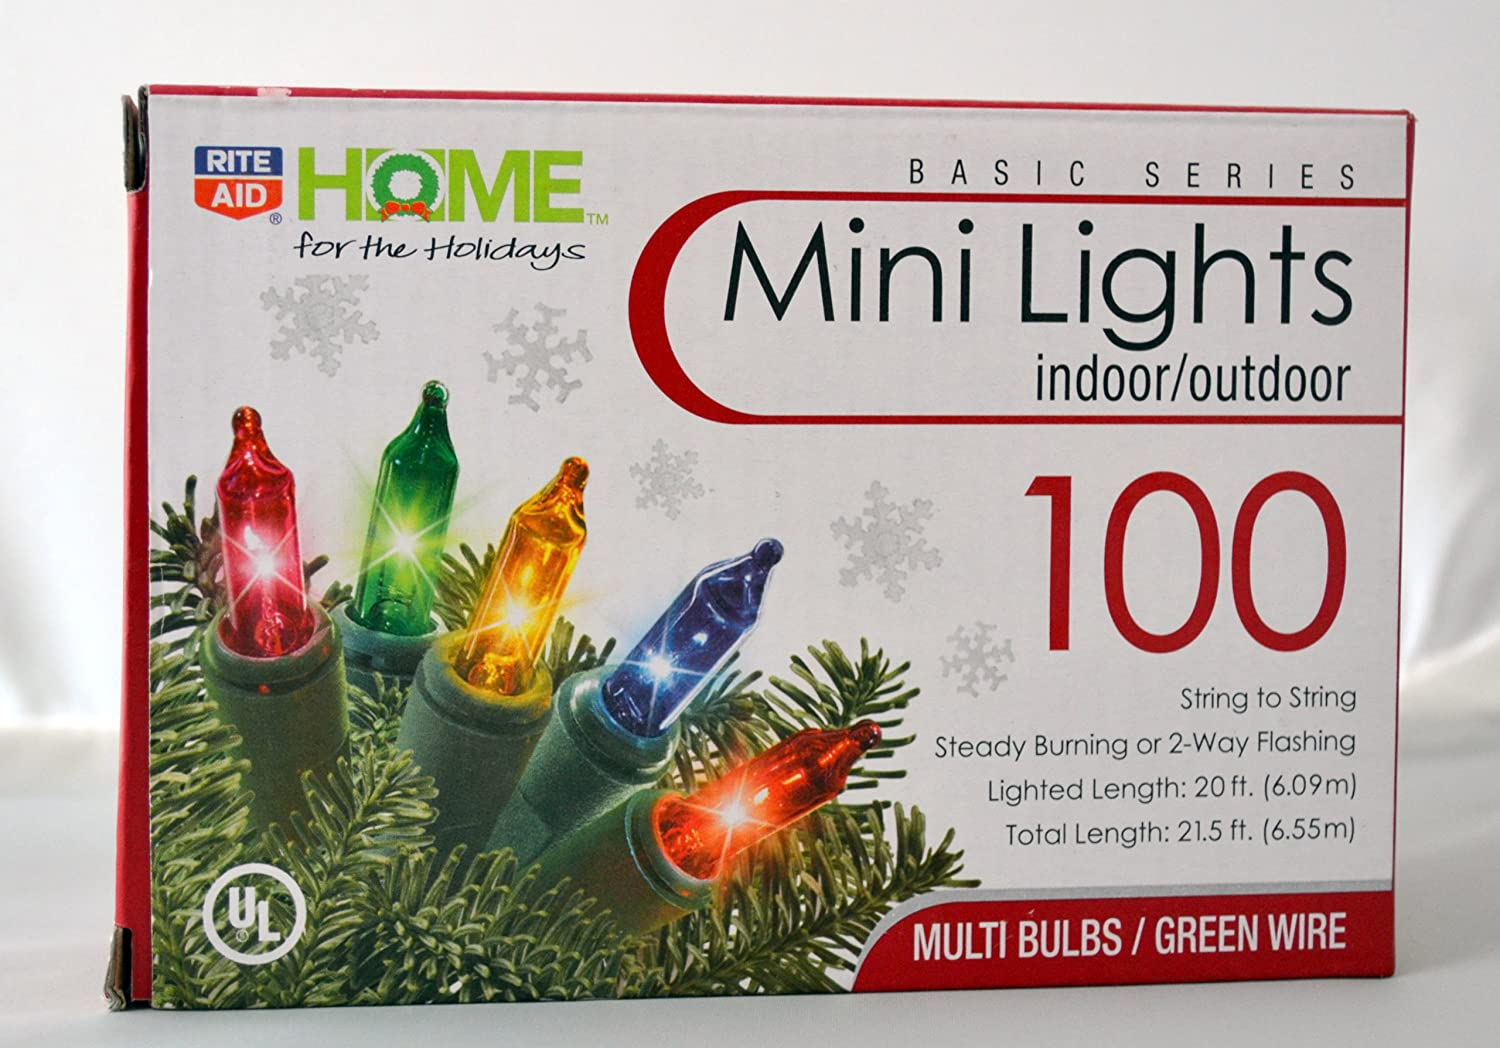 amazoncom rite aid home for the holiday 100 color mini lights indooroutdoor home kitchen - Rite Aid Christmas Lights